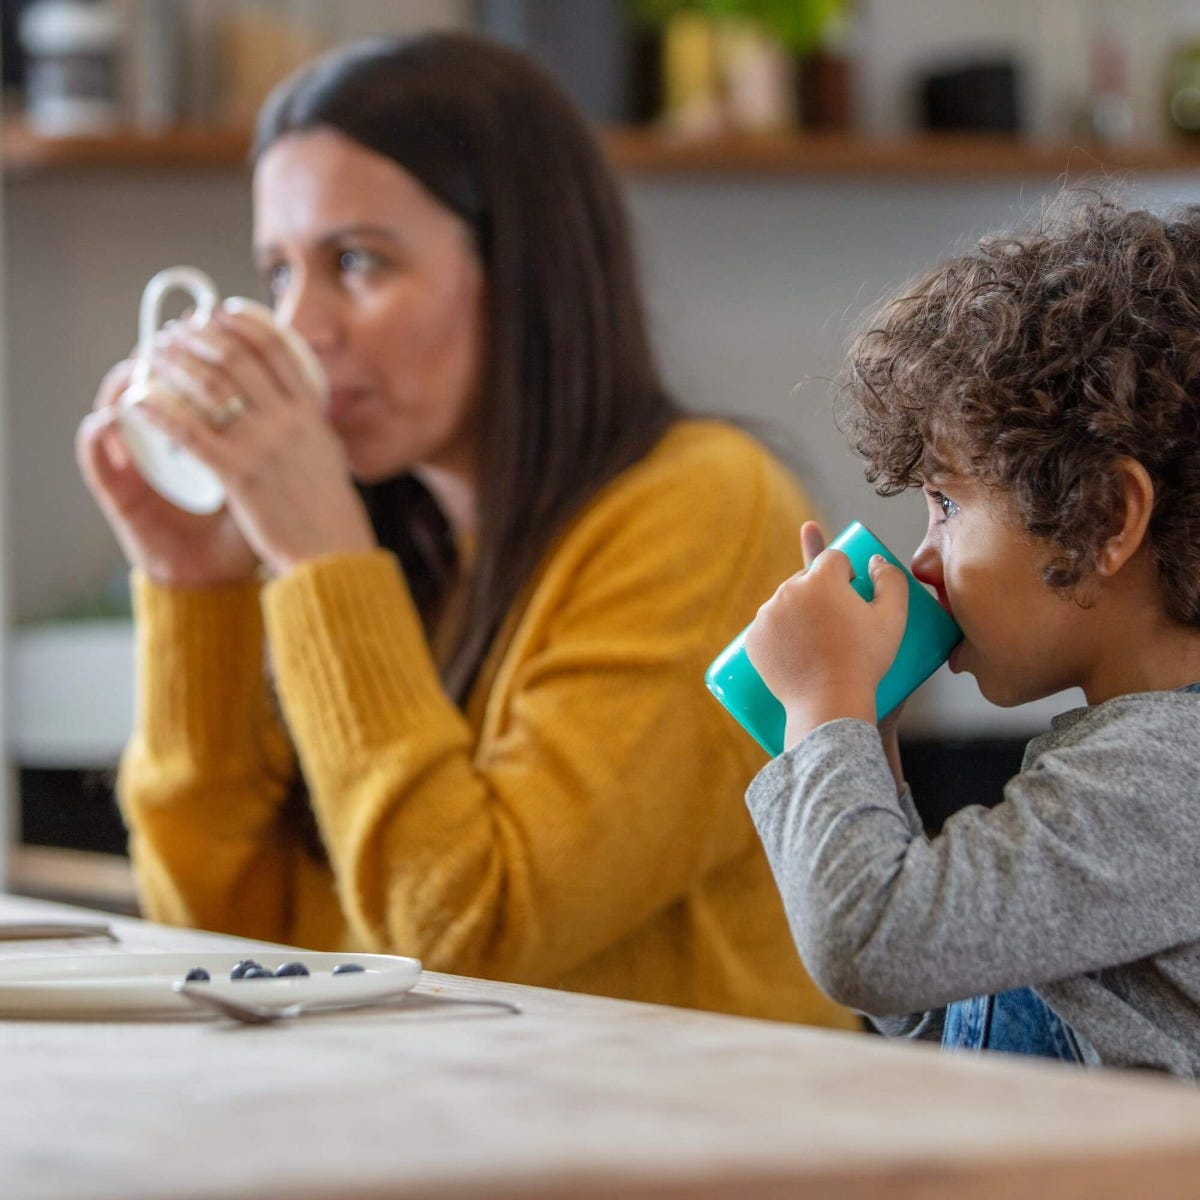 toddler-drinking-from-green-Easiflow-360°-Cup-with-handles-next-to-mum-drinking-from-mug-at-dinner-table